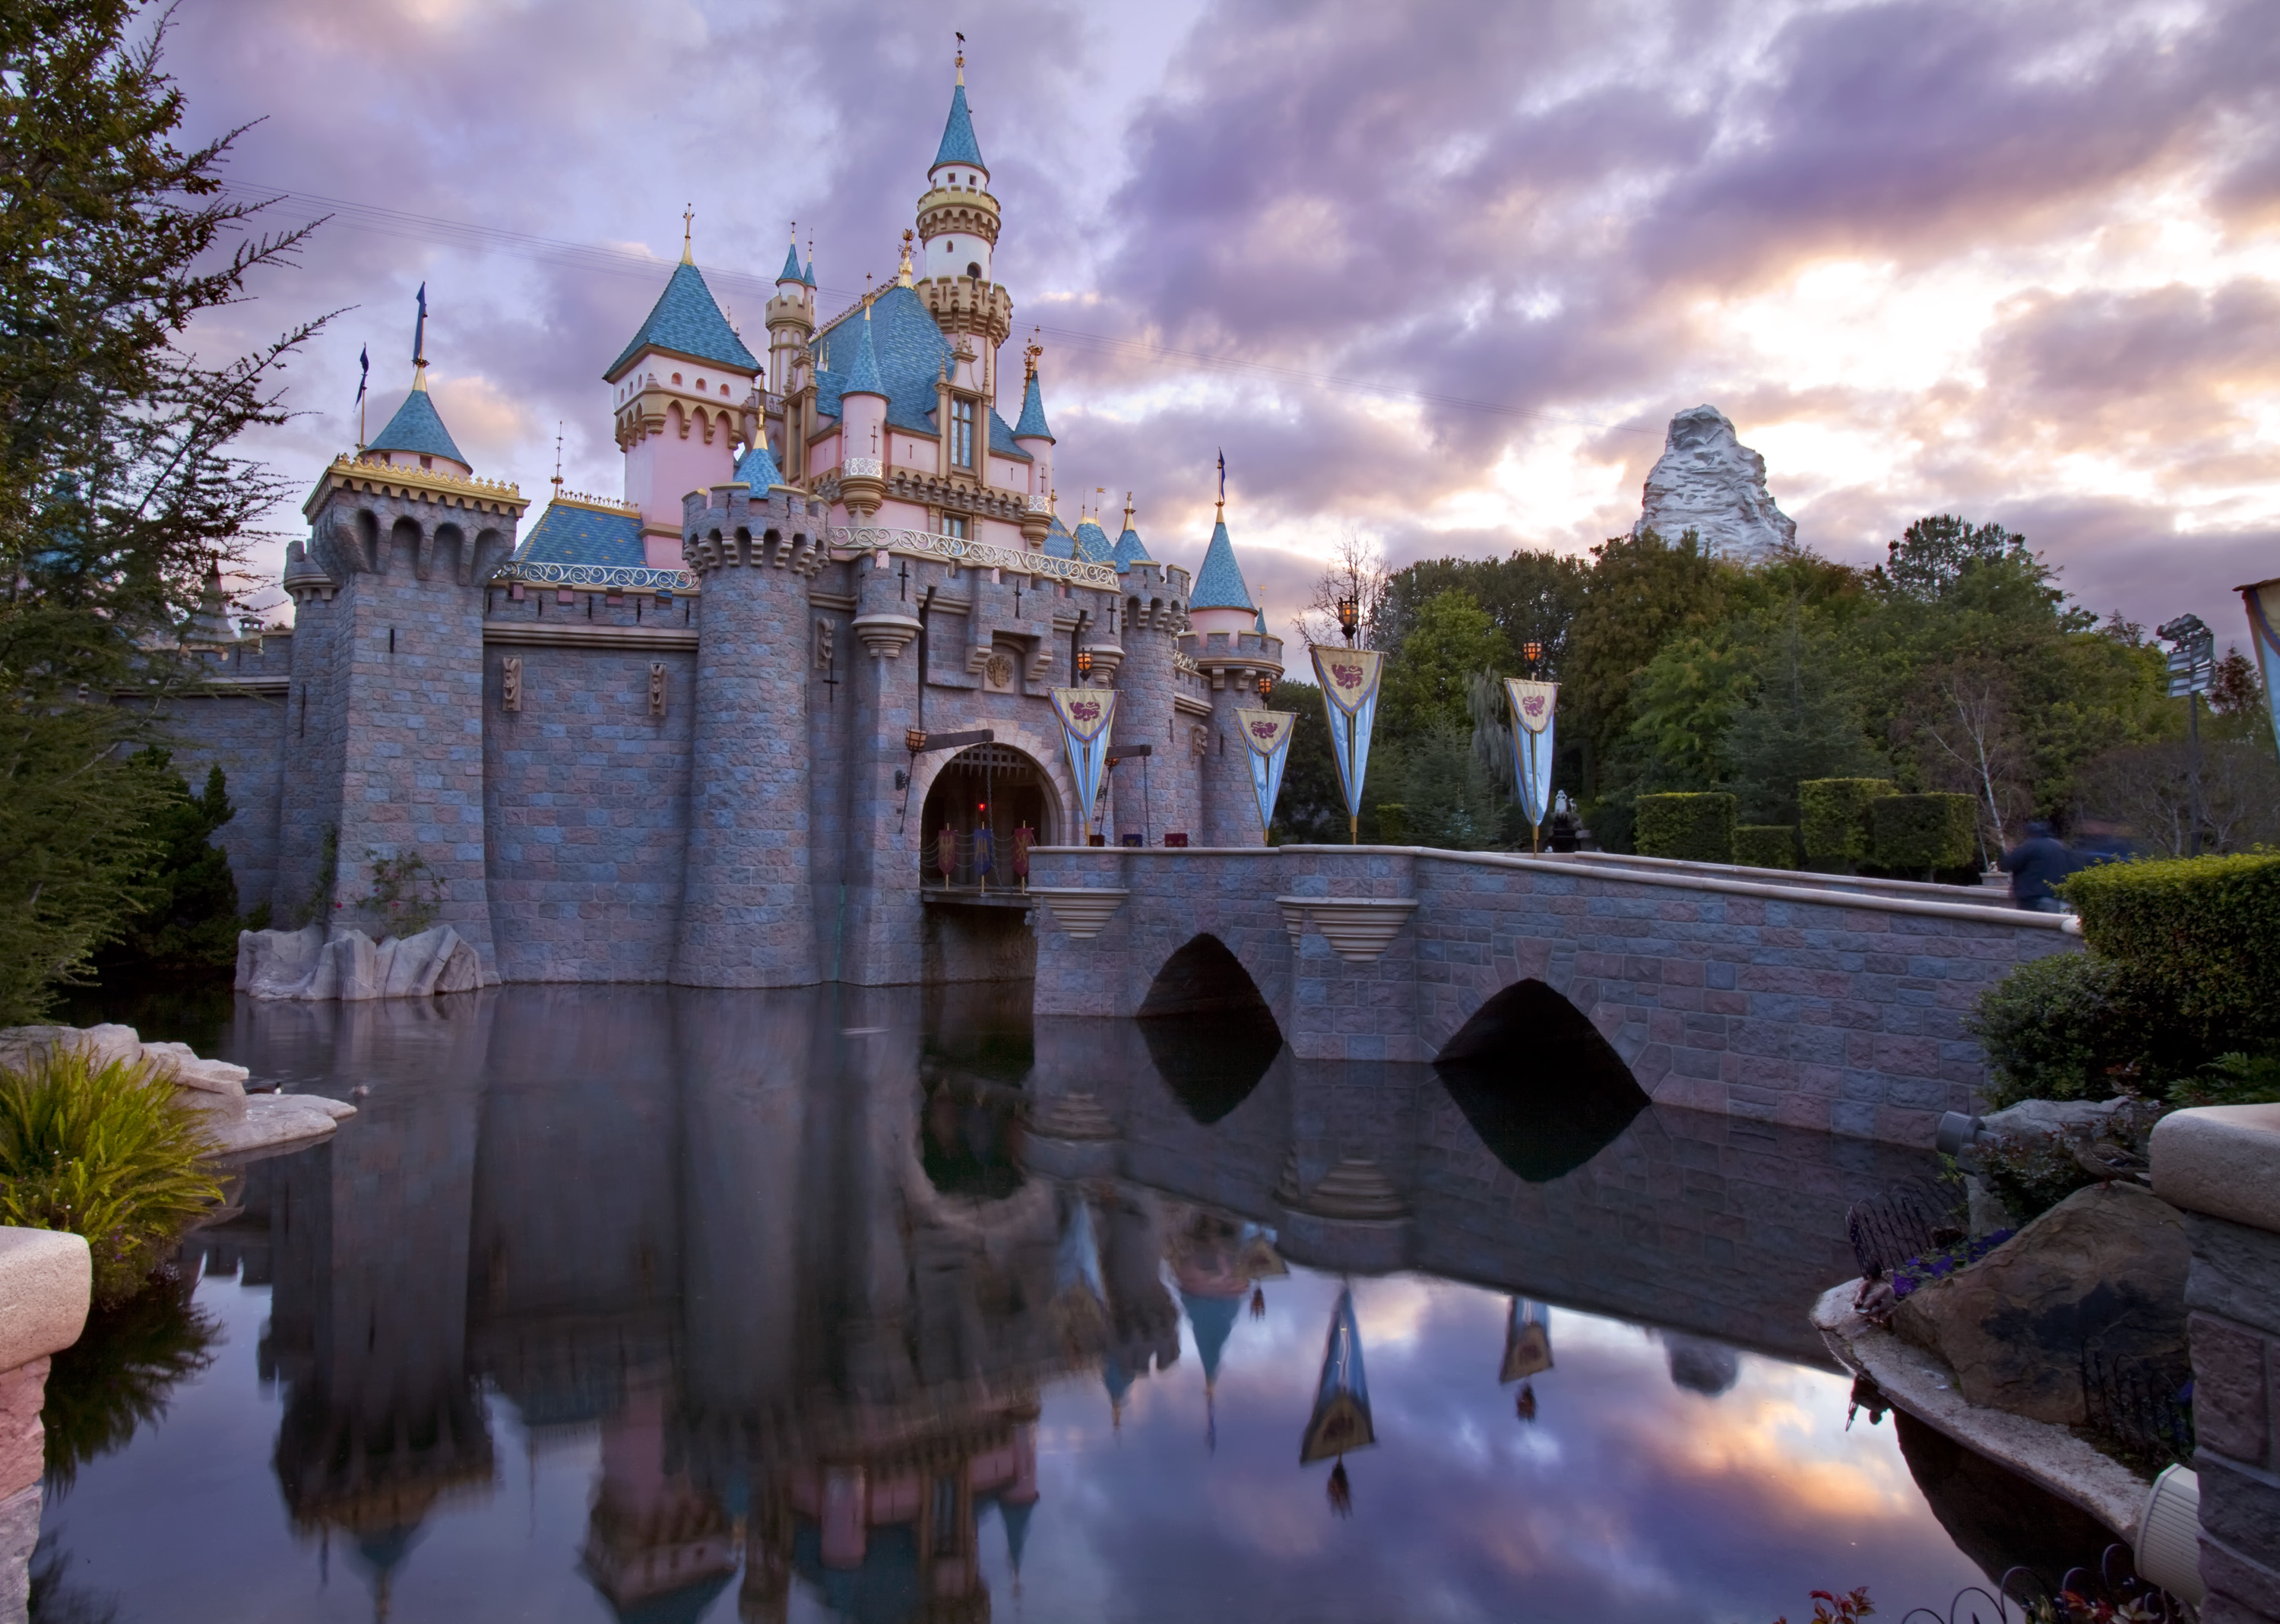 Make the Holidays Even More Magical with the $70 Park Ticket Offer at Disneyland Resort